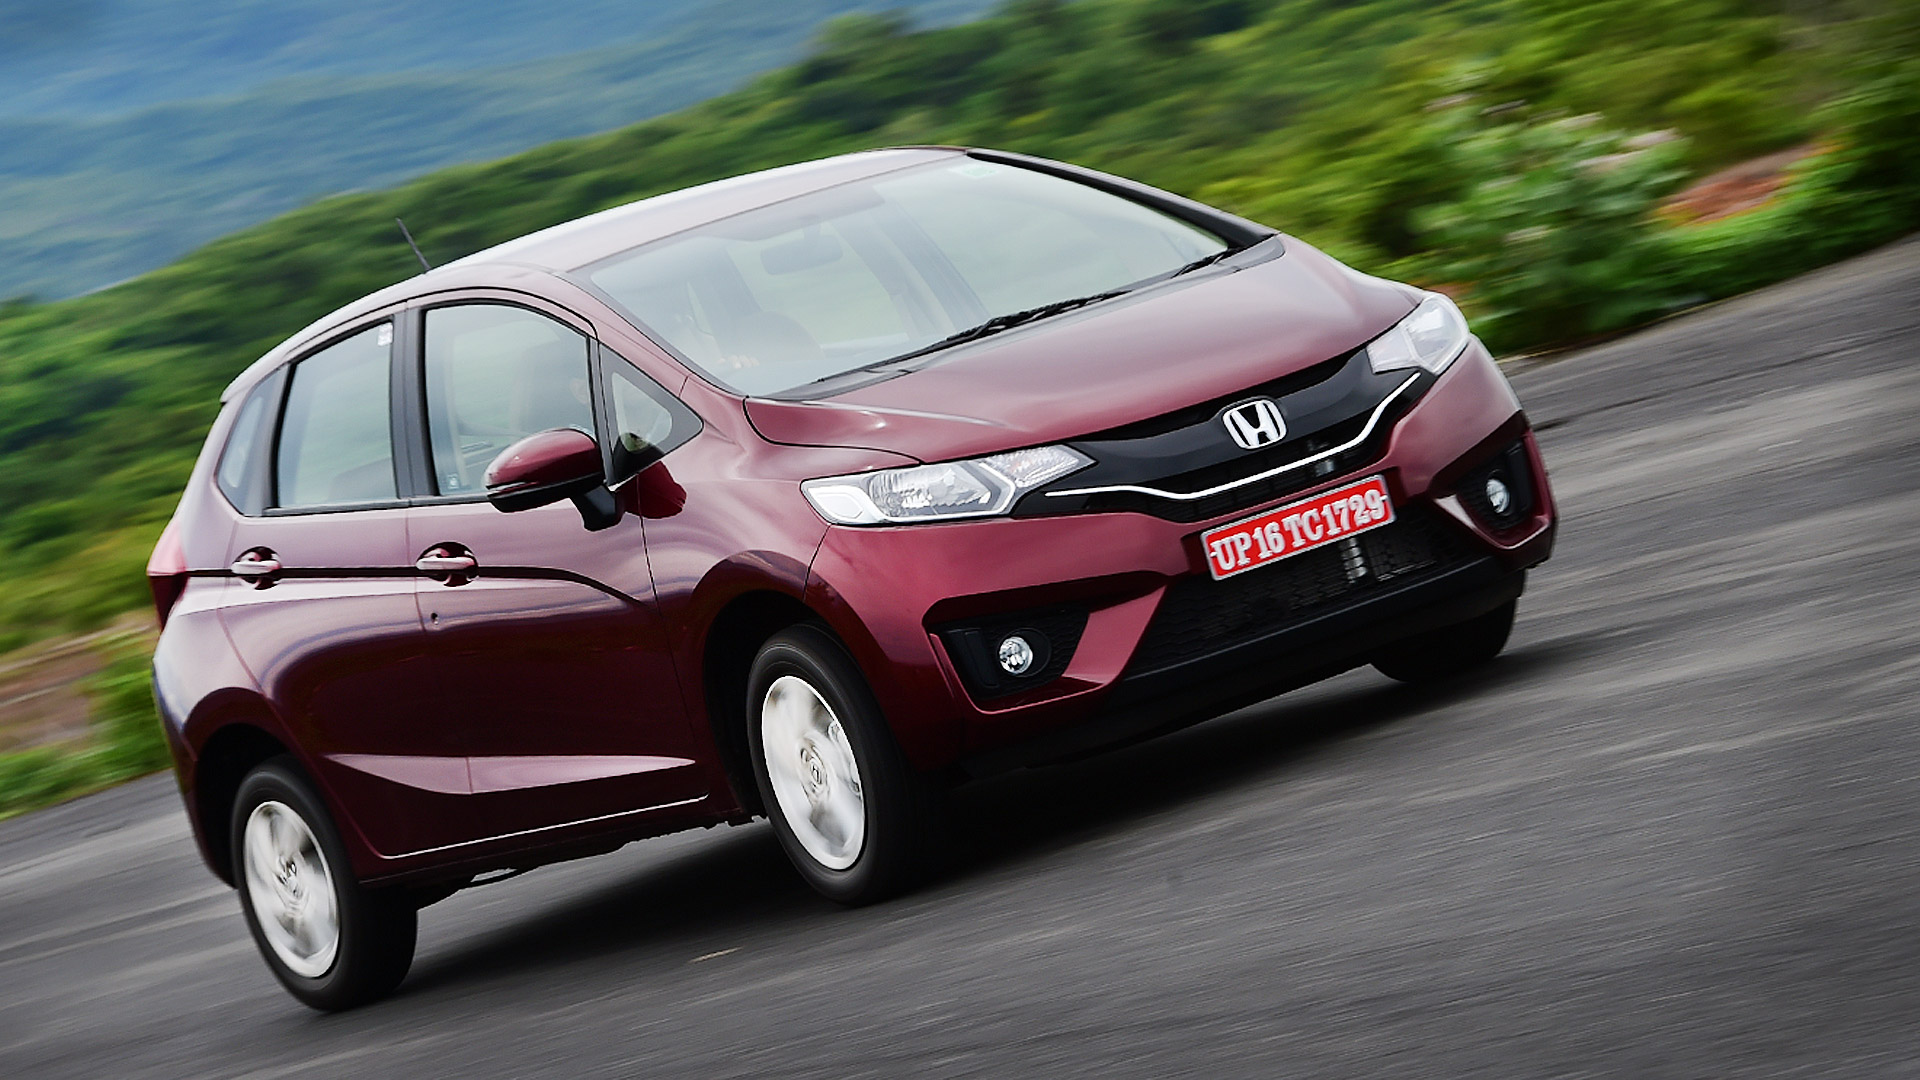 honda jazz 2015 price mileage reviews specification gallery overdrive. Black Bedroom Furniture Sets. Home Design Ideas